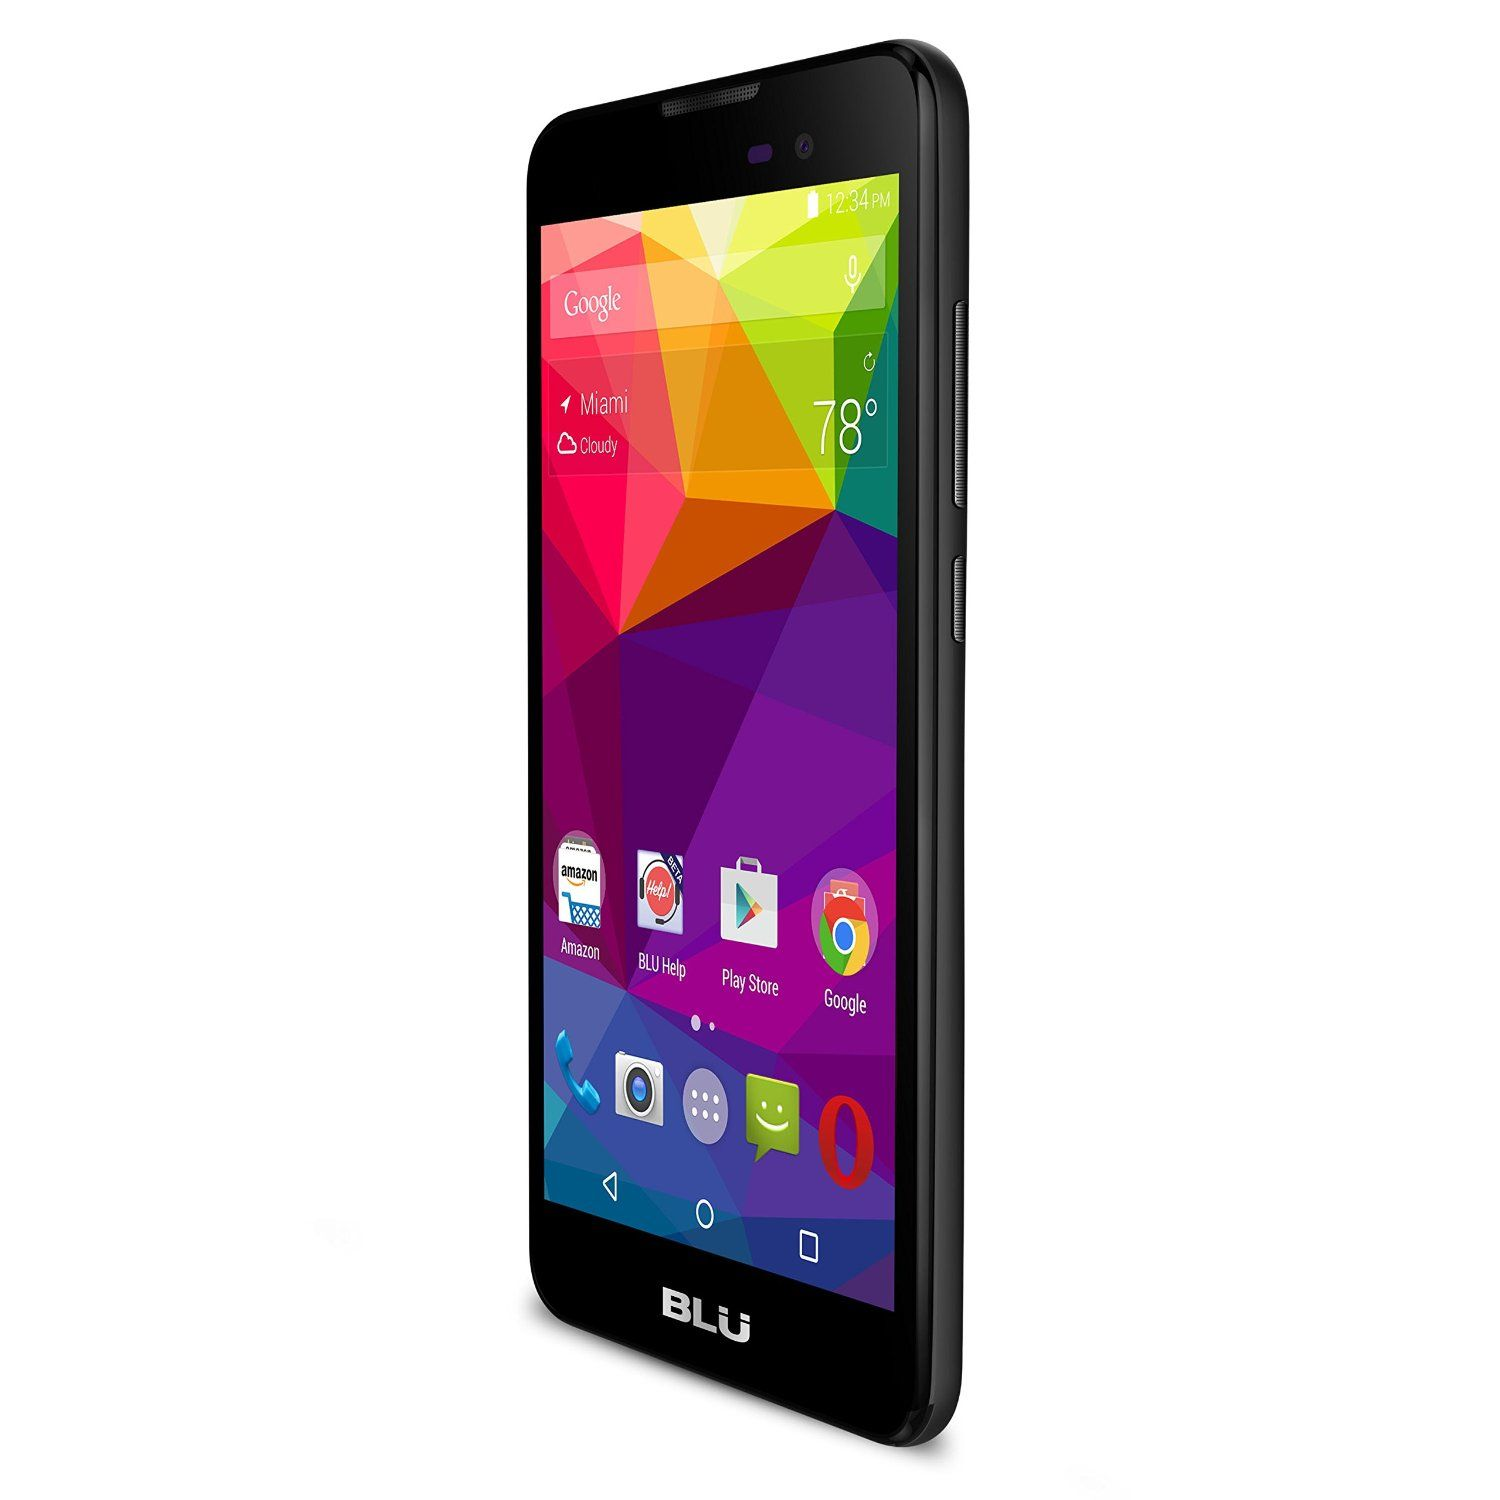 blu advance 5.0 usb driver